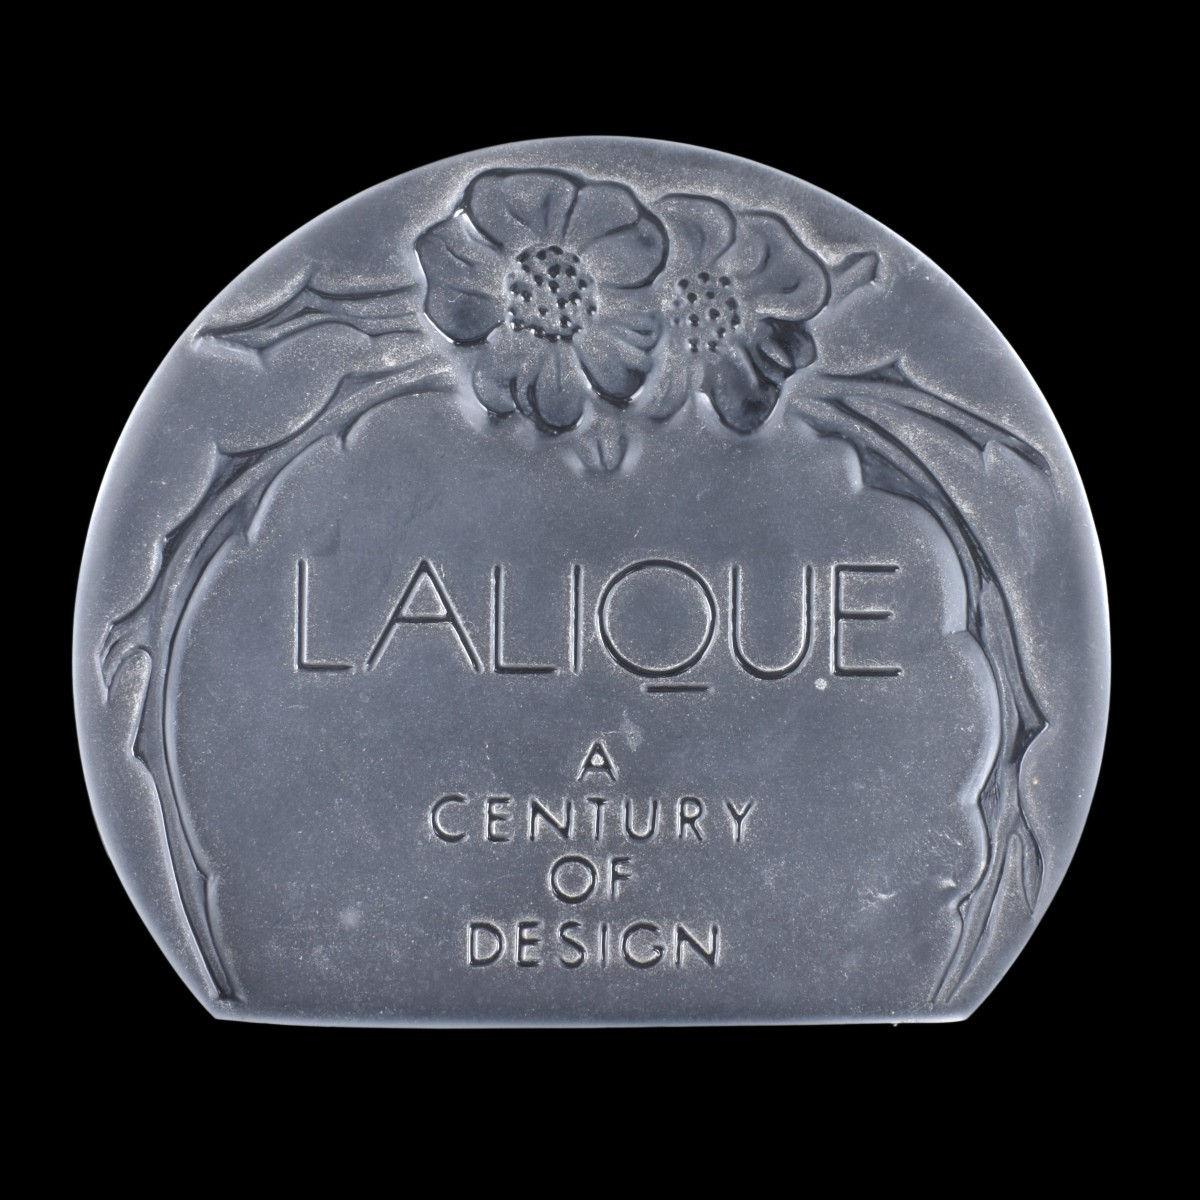 Lalique Crystal Bottle and Lalique Crystal Plaque